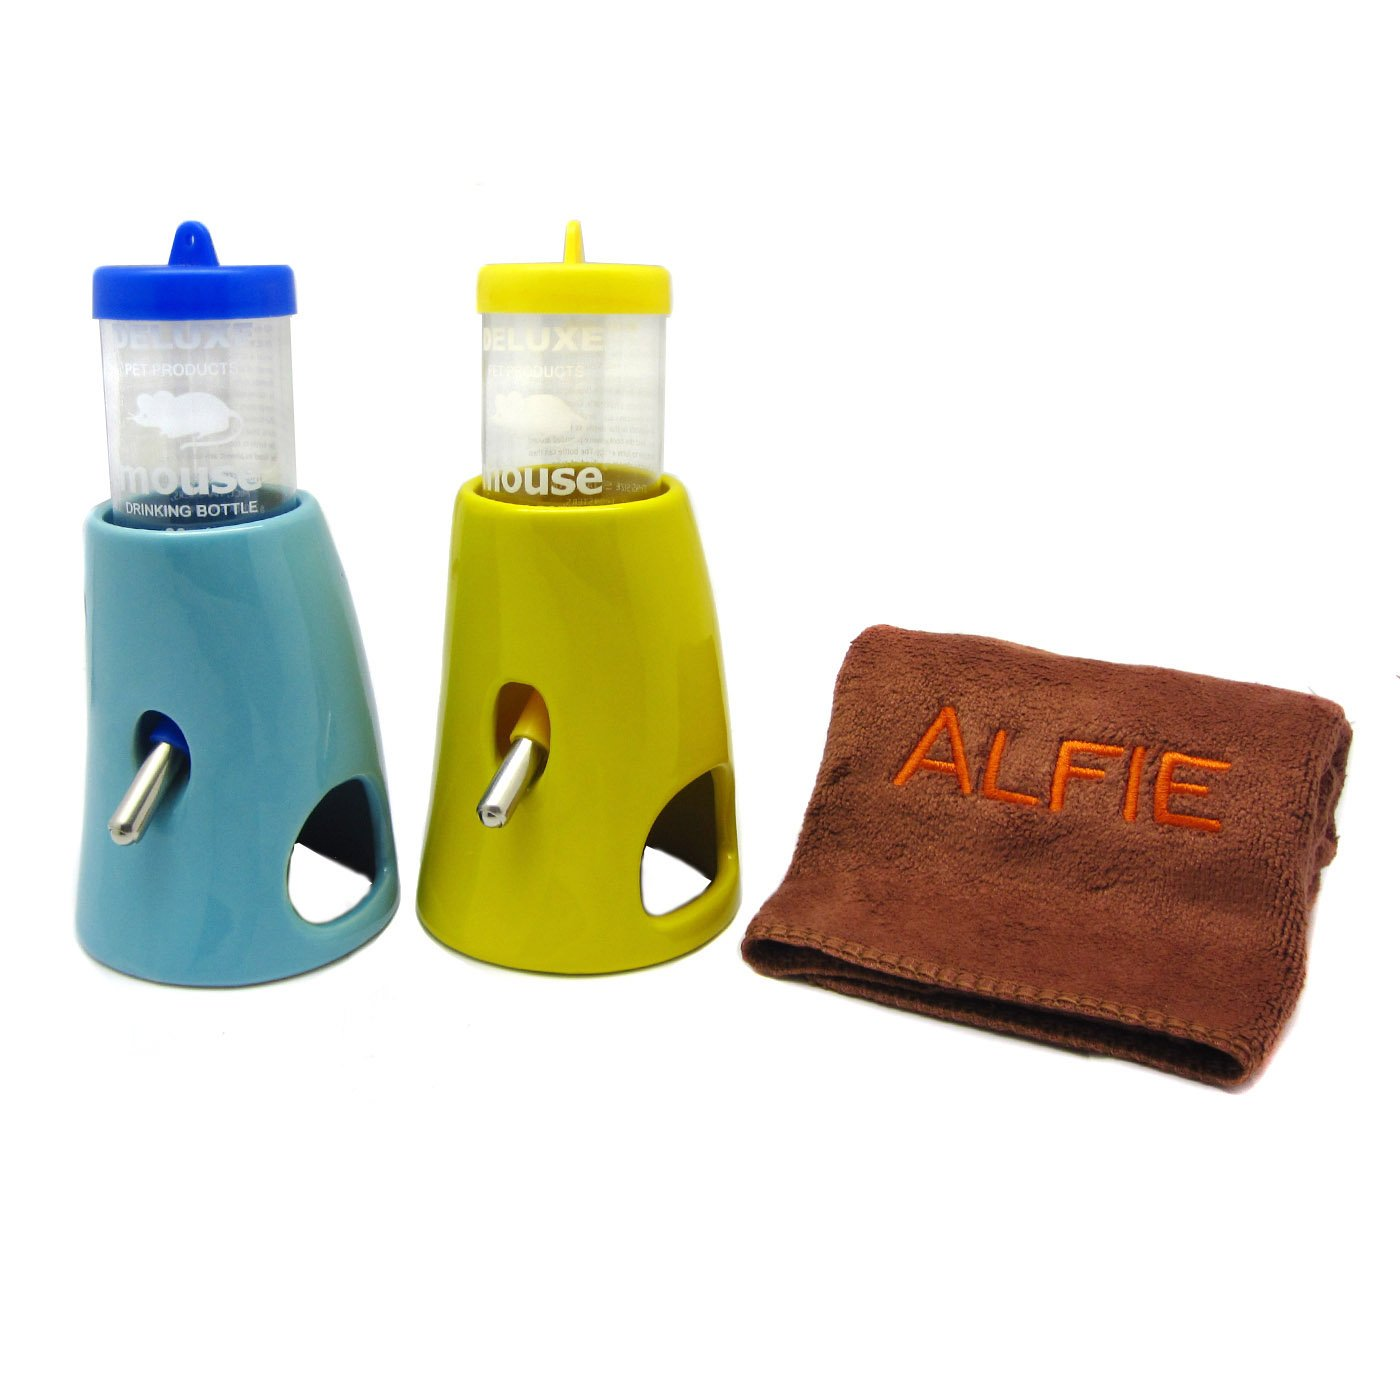 Alfie Pet by Petoga Couture - 2-in-1 Water Bottle with Ceramic Base Hut 2-Pieces Set with Microfiber Fast-Dry Washcloth for Small Animals like Dwarf Hamster and Mouse